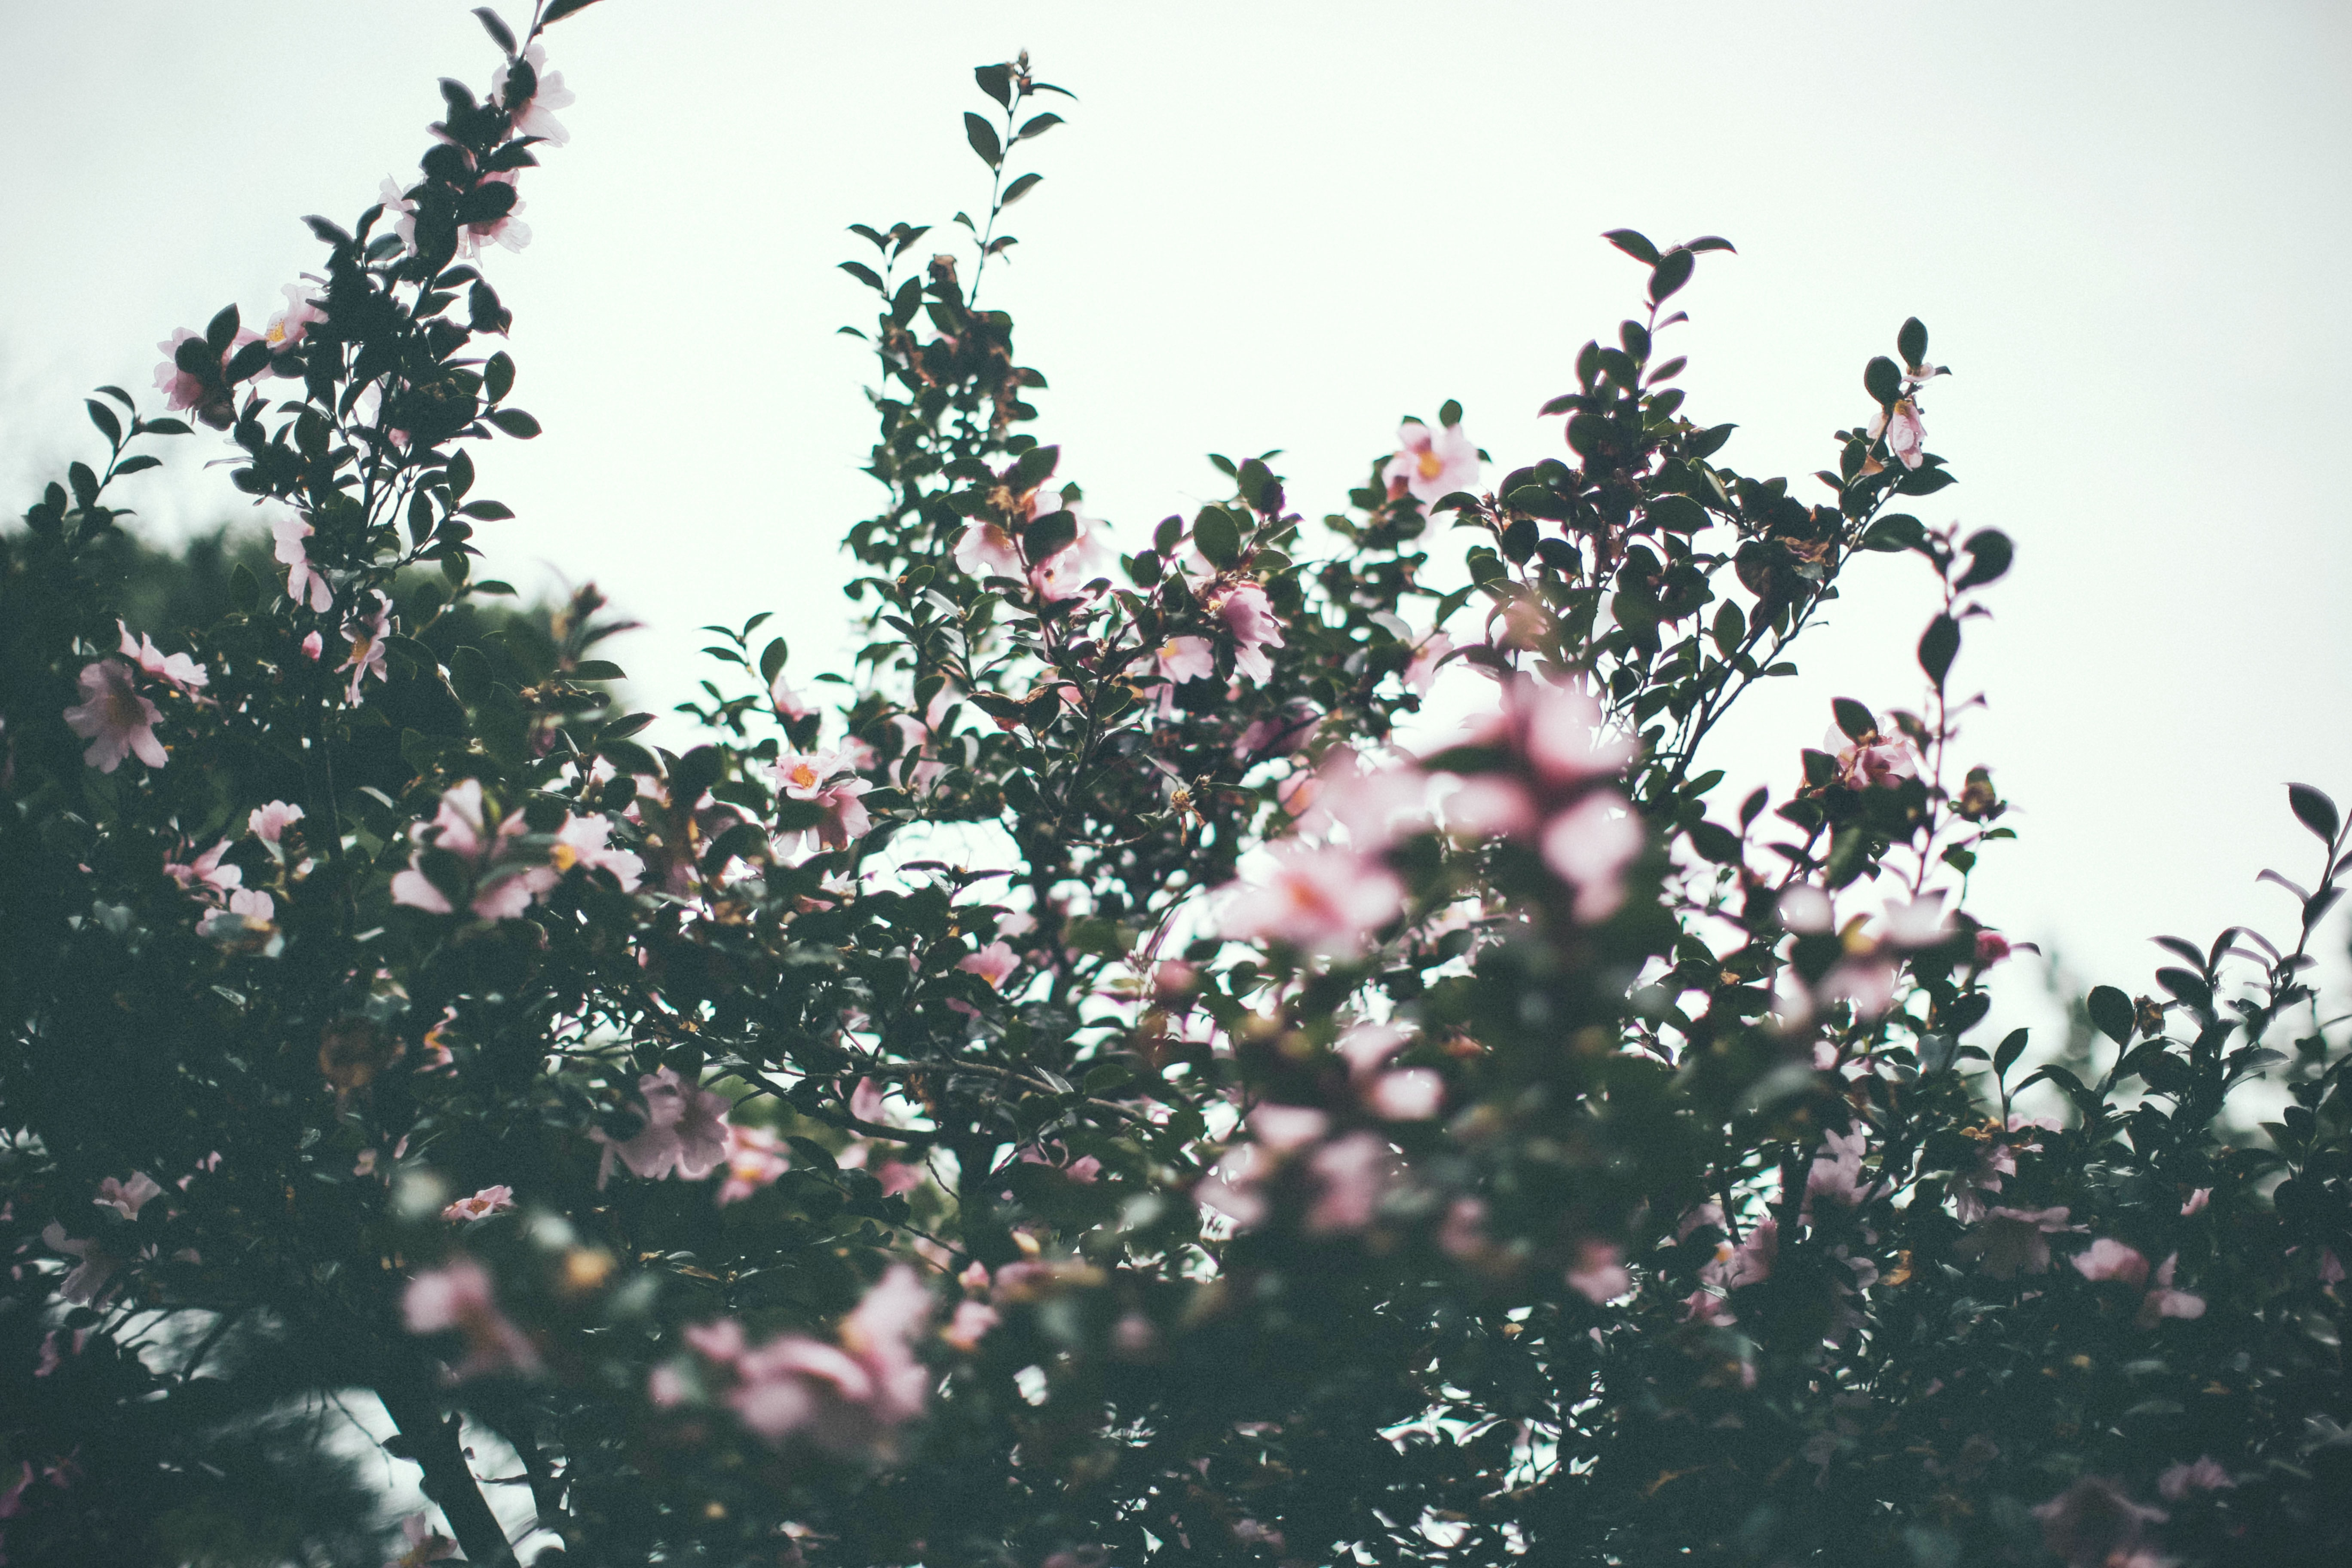 A low-angle shot of a bush covered in pink flowers